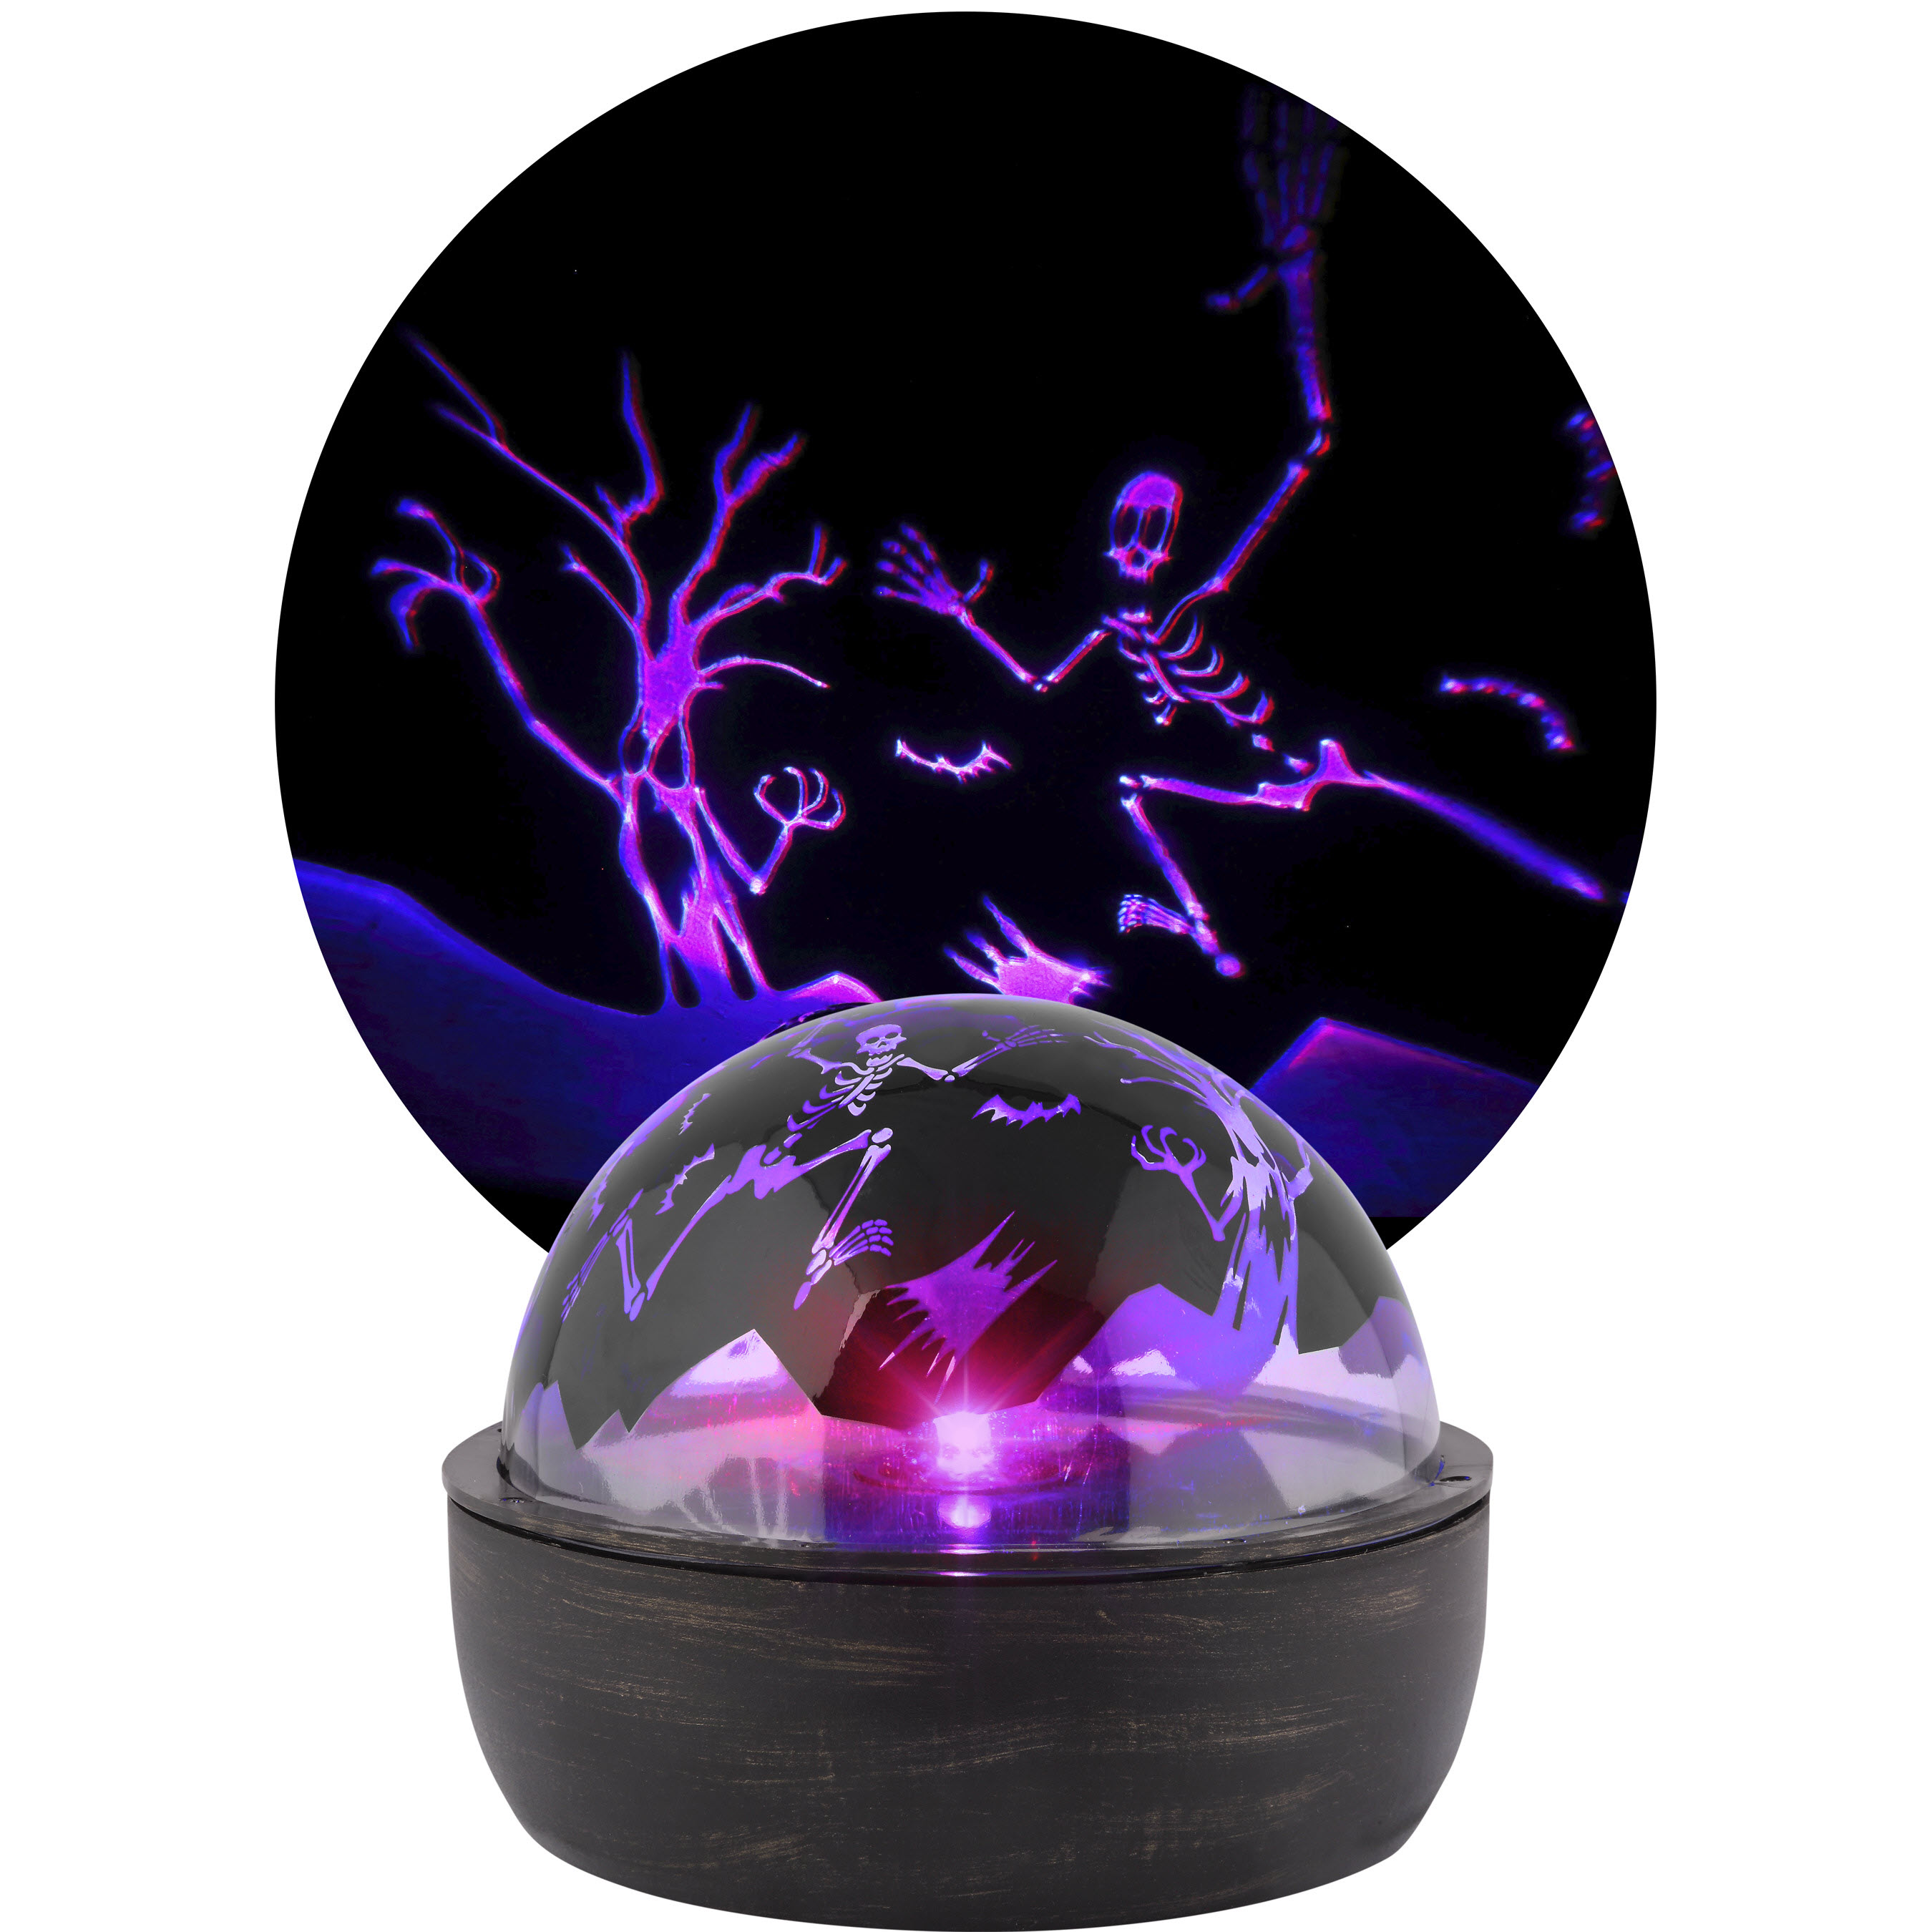 shop gemmy shadow lights multi-function purple led multi-design